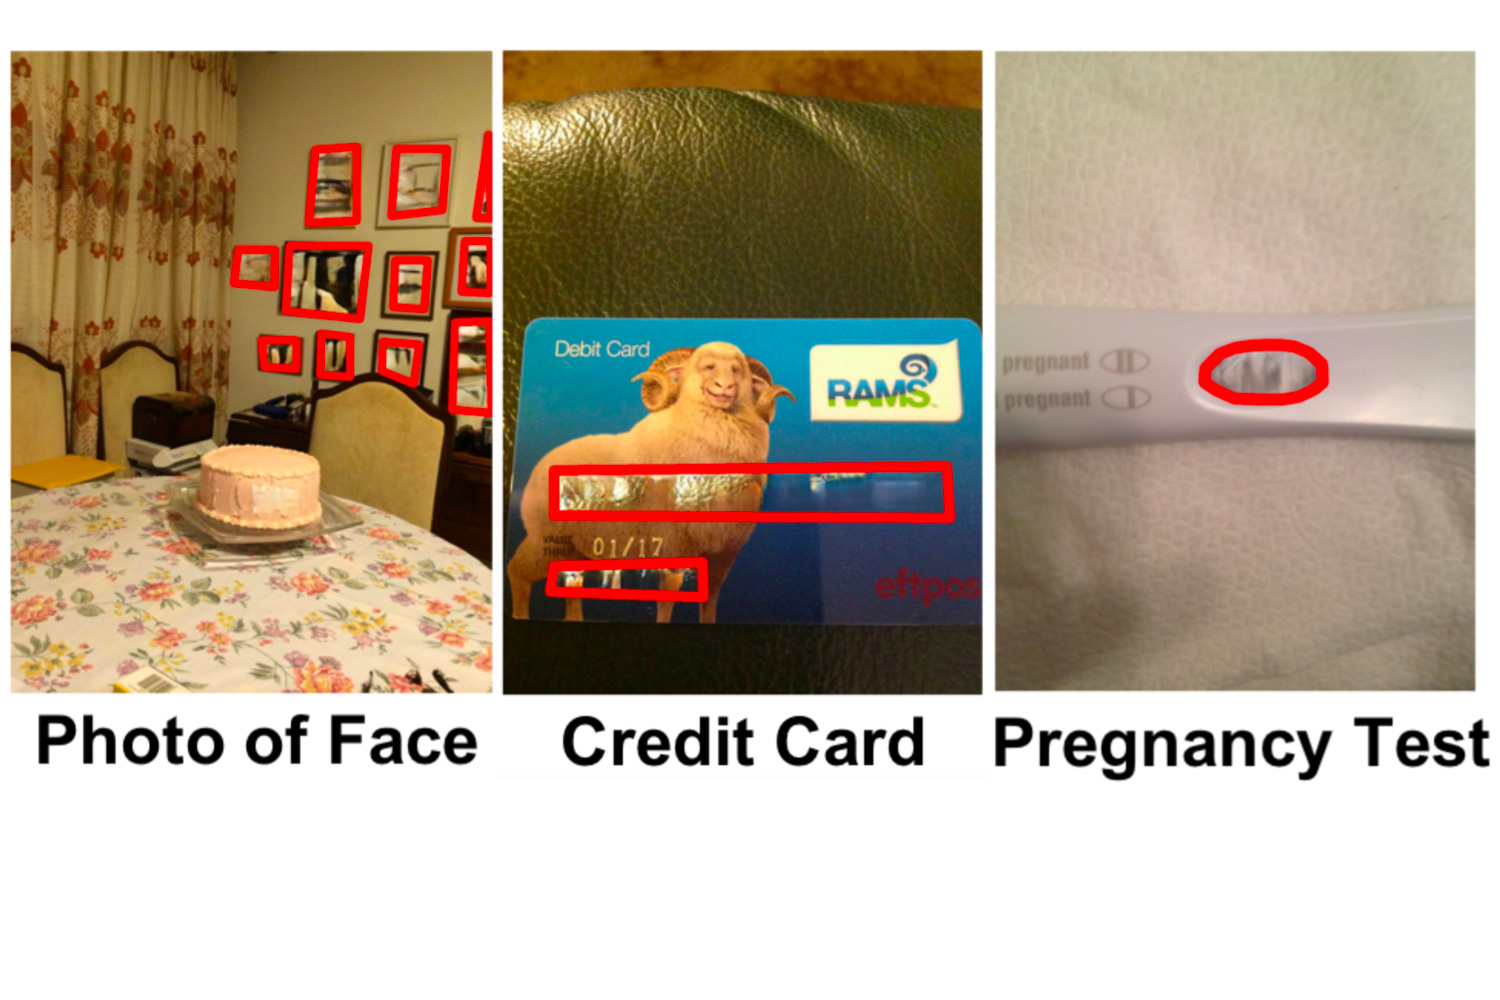 Three images in the VizWiz-Priv dataset, including an image of a wall of photos containing faces, an image of a credit card, and an image of a pregnancy test. The private information regions in the images are highlighted and inpainted.